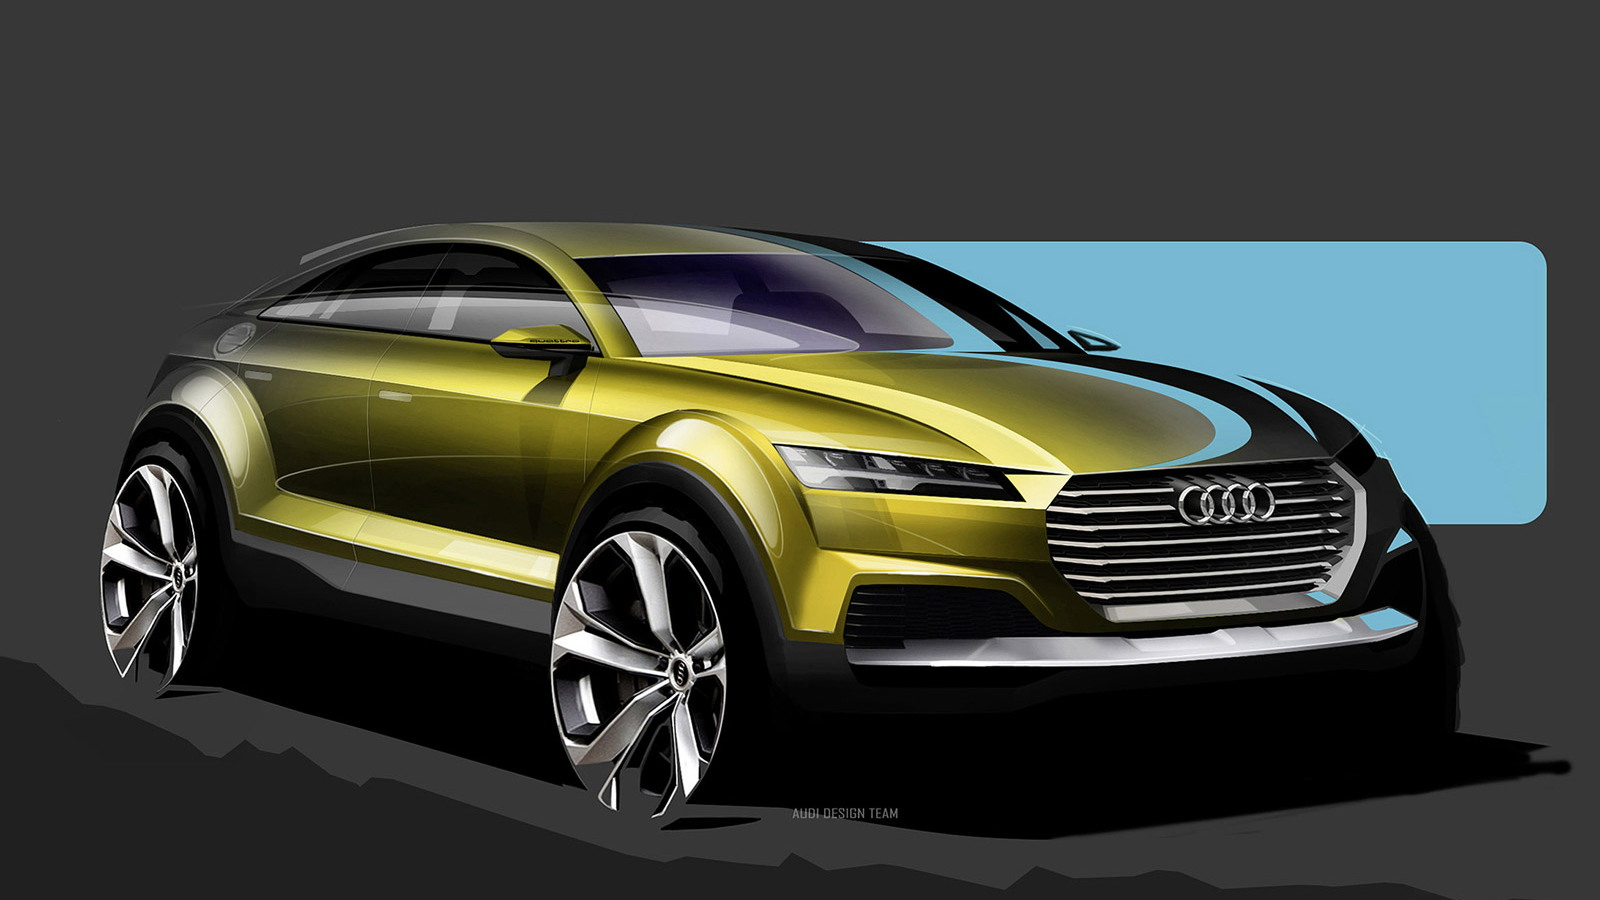 Teaser sketch for new Audi TT-based crossover concept